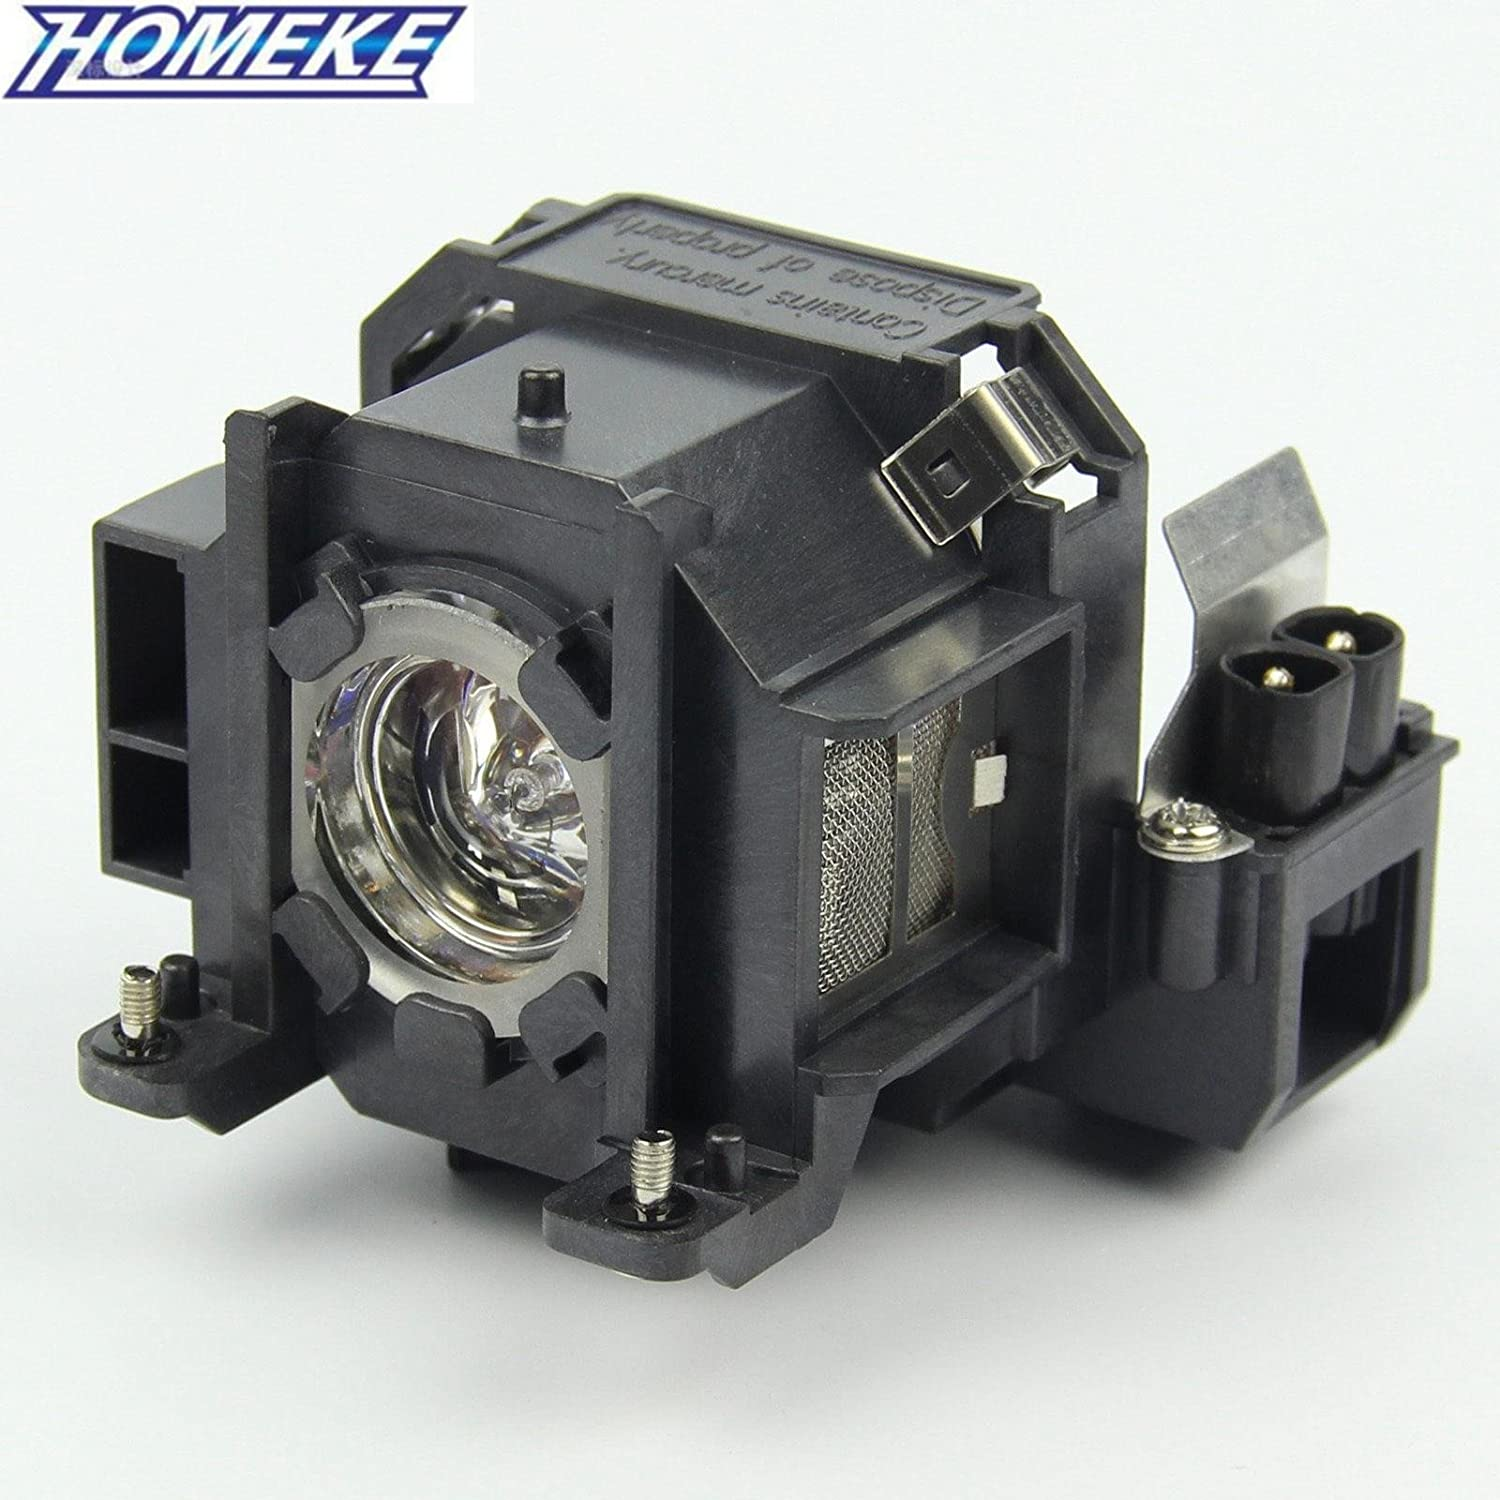 Homeke ELPLP38 original projector bulb for Epson EMP-1700//1705//1707//1710//1715//1717 with housing